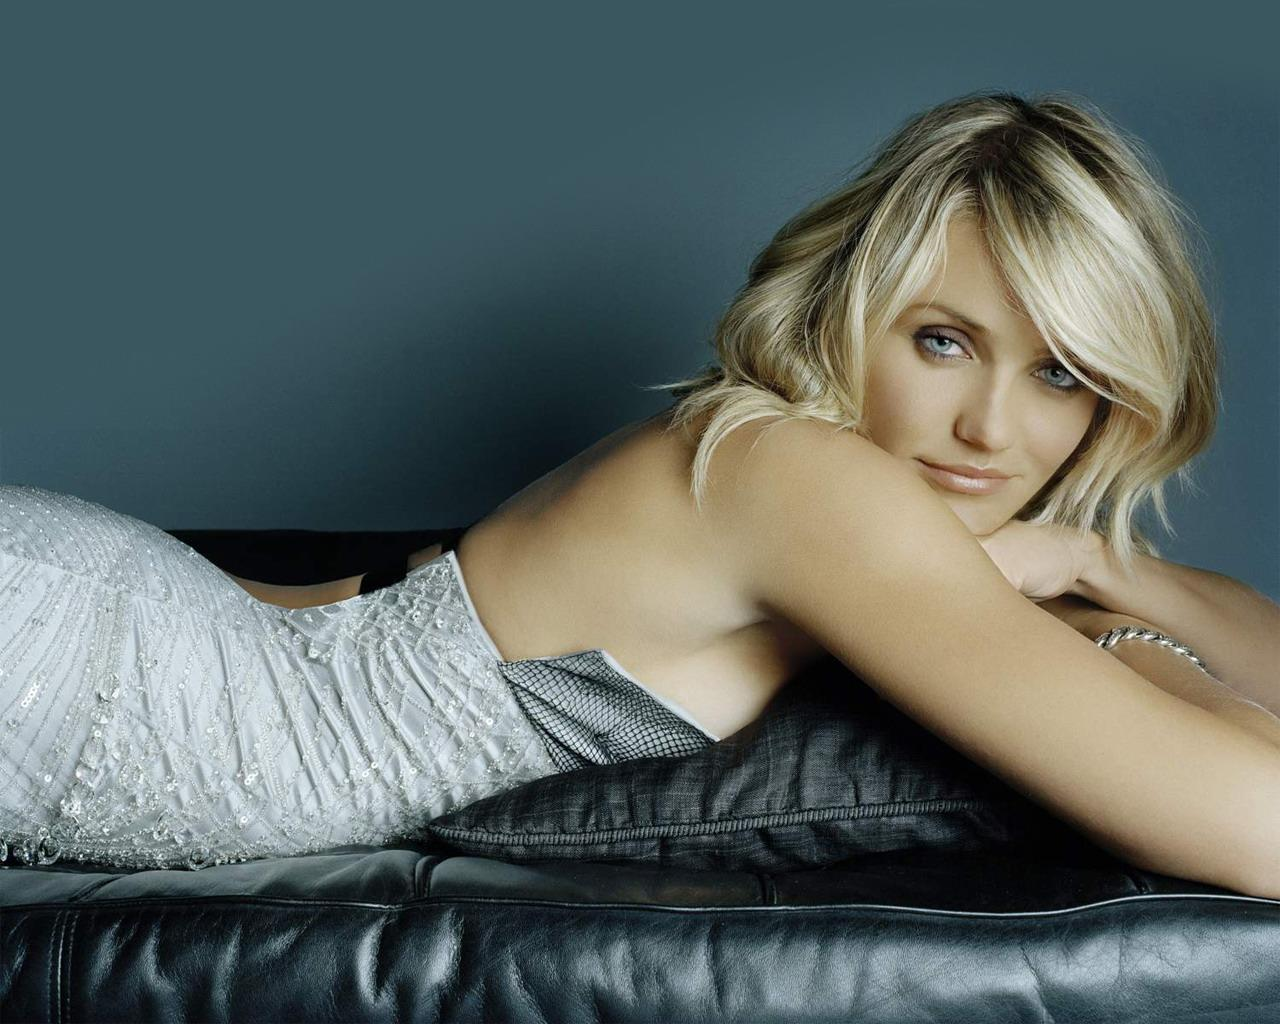 Cameron Diaz Wallpapers 1280x1024